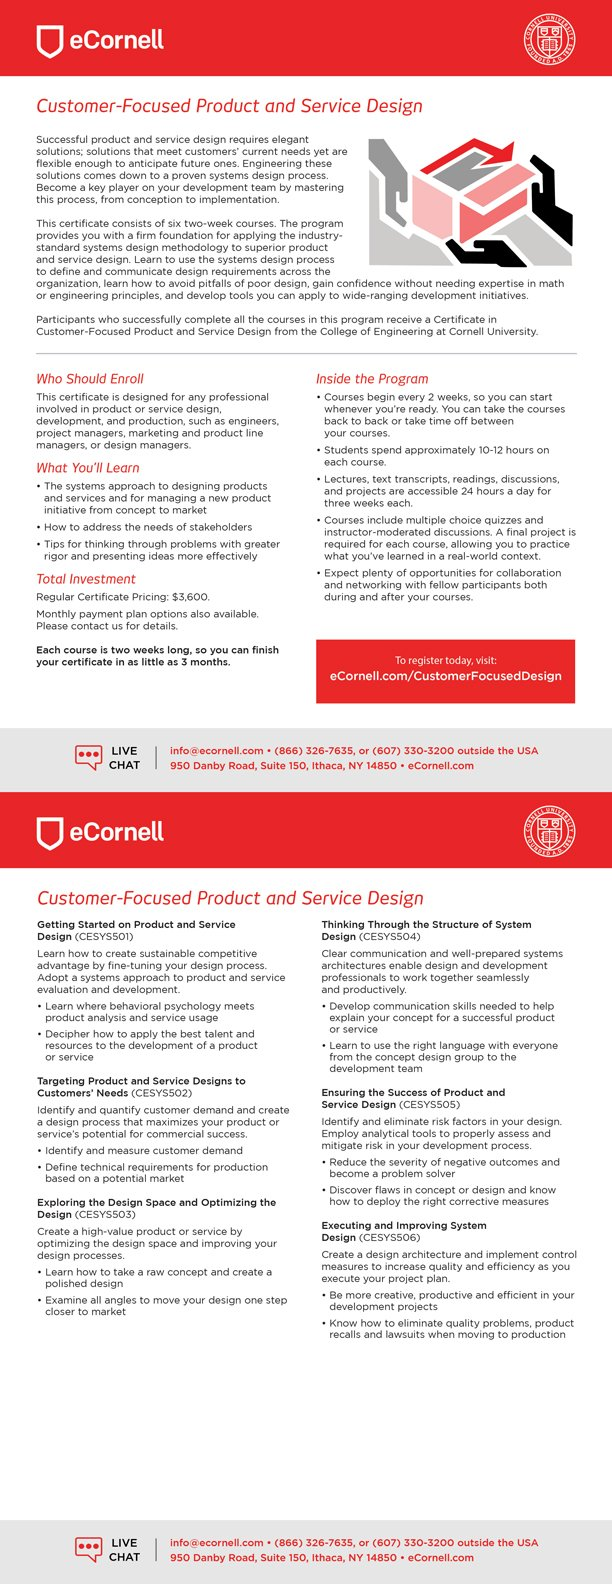 Customer-Focused Product and Service Design Flyer